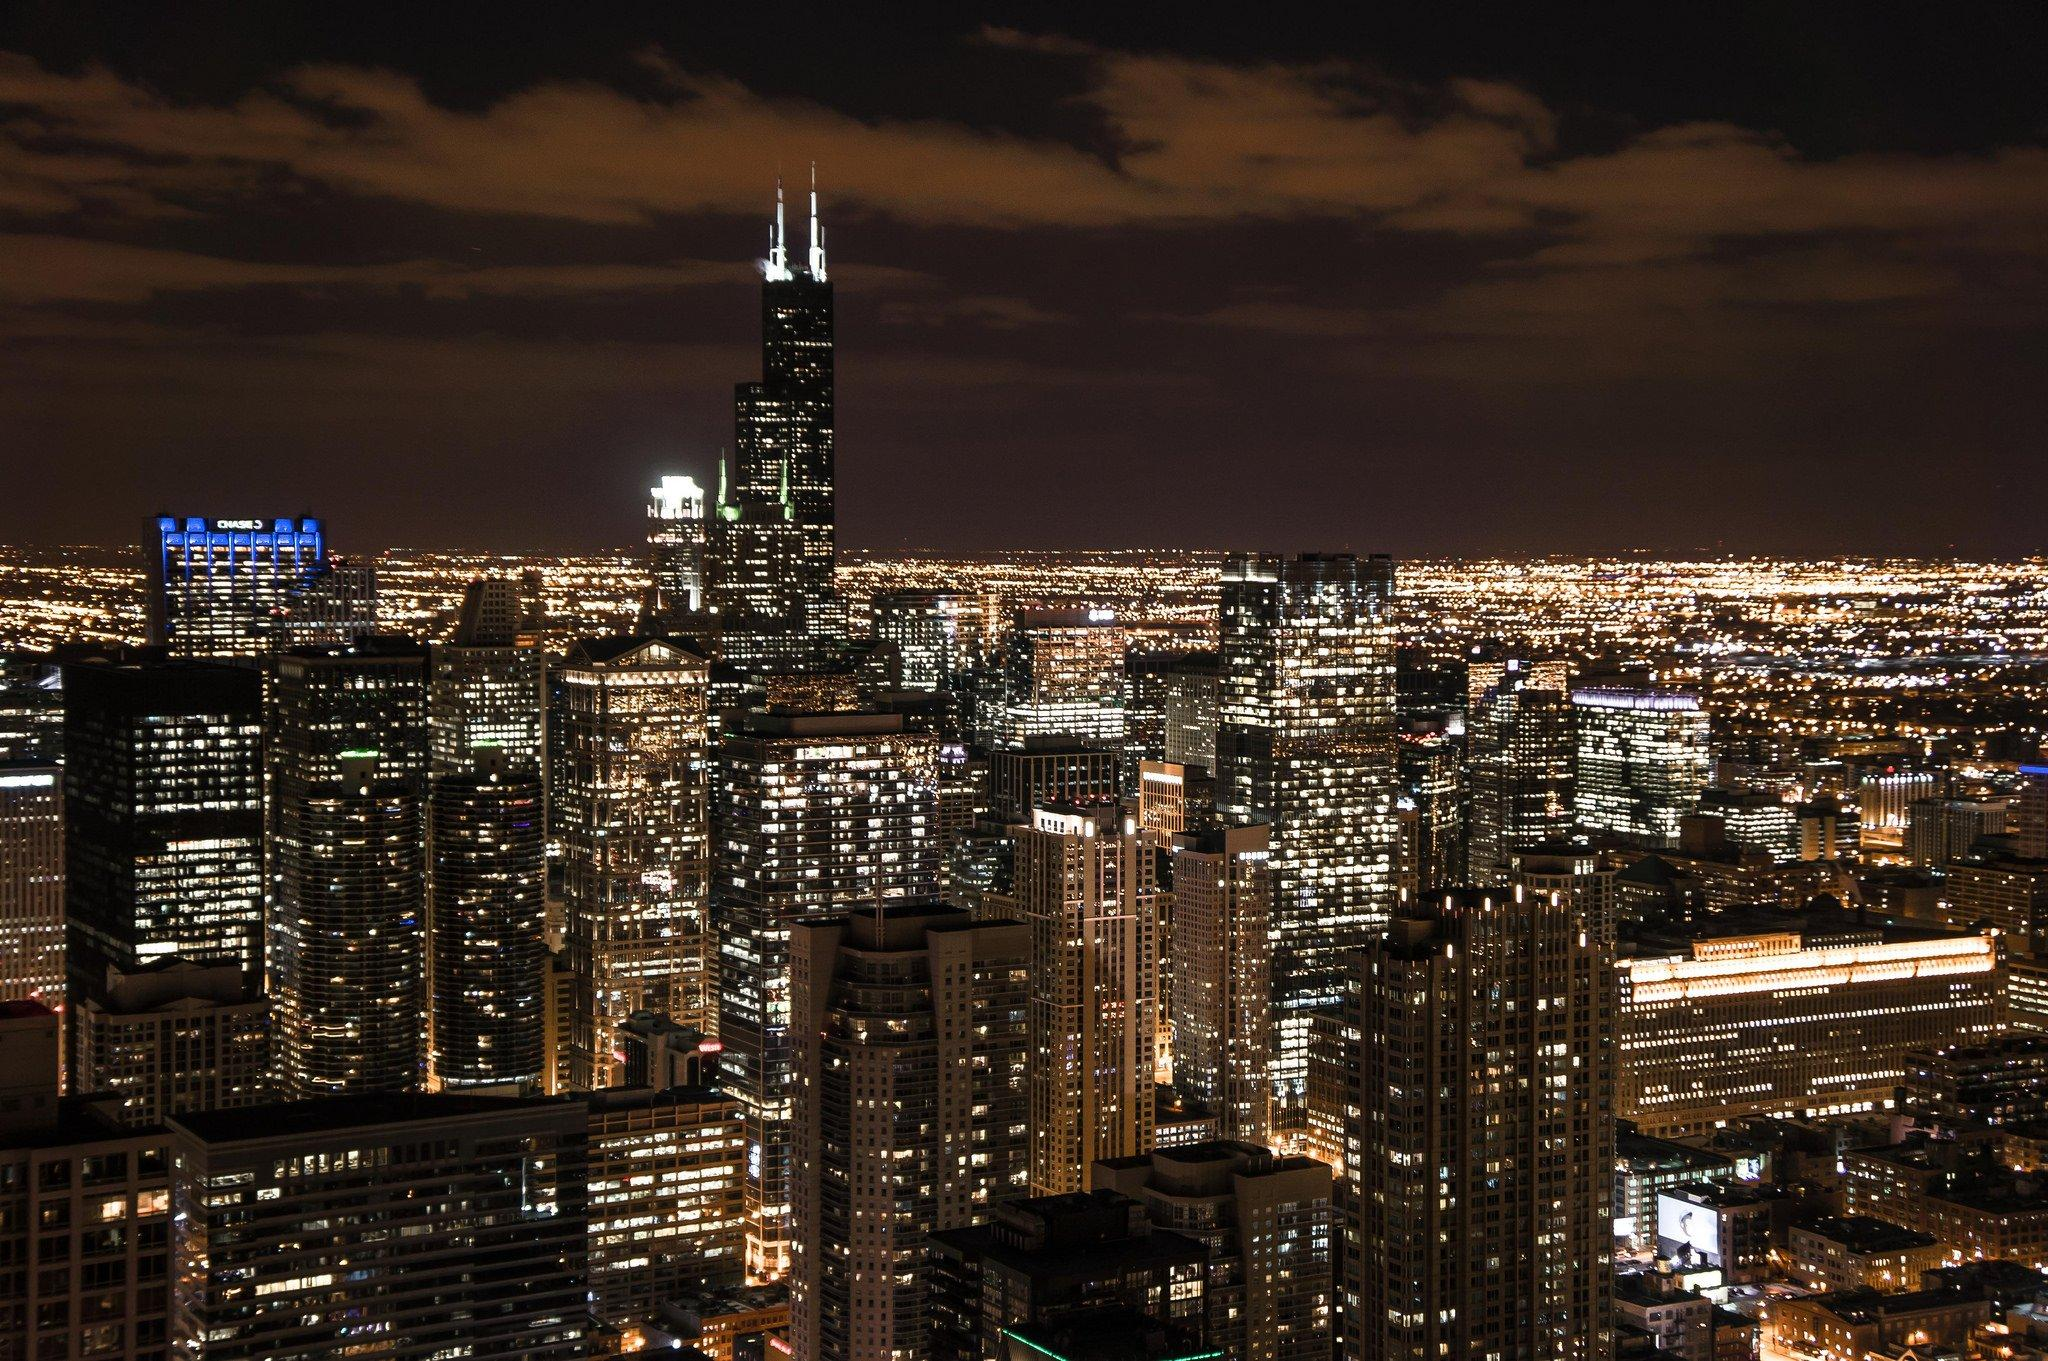 Chicago Night Cityscape Wallpapers Wallpaper Cave